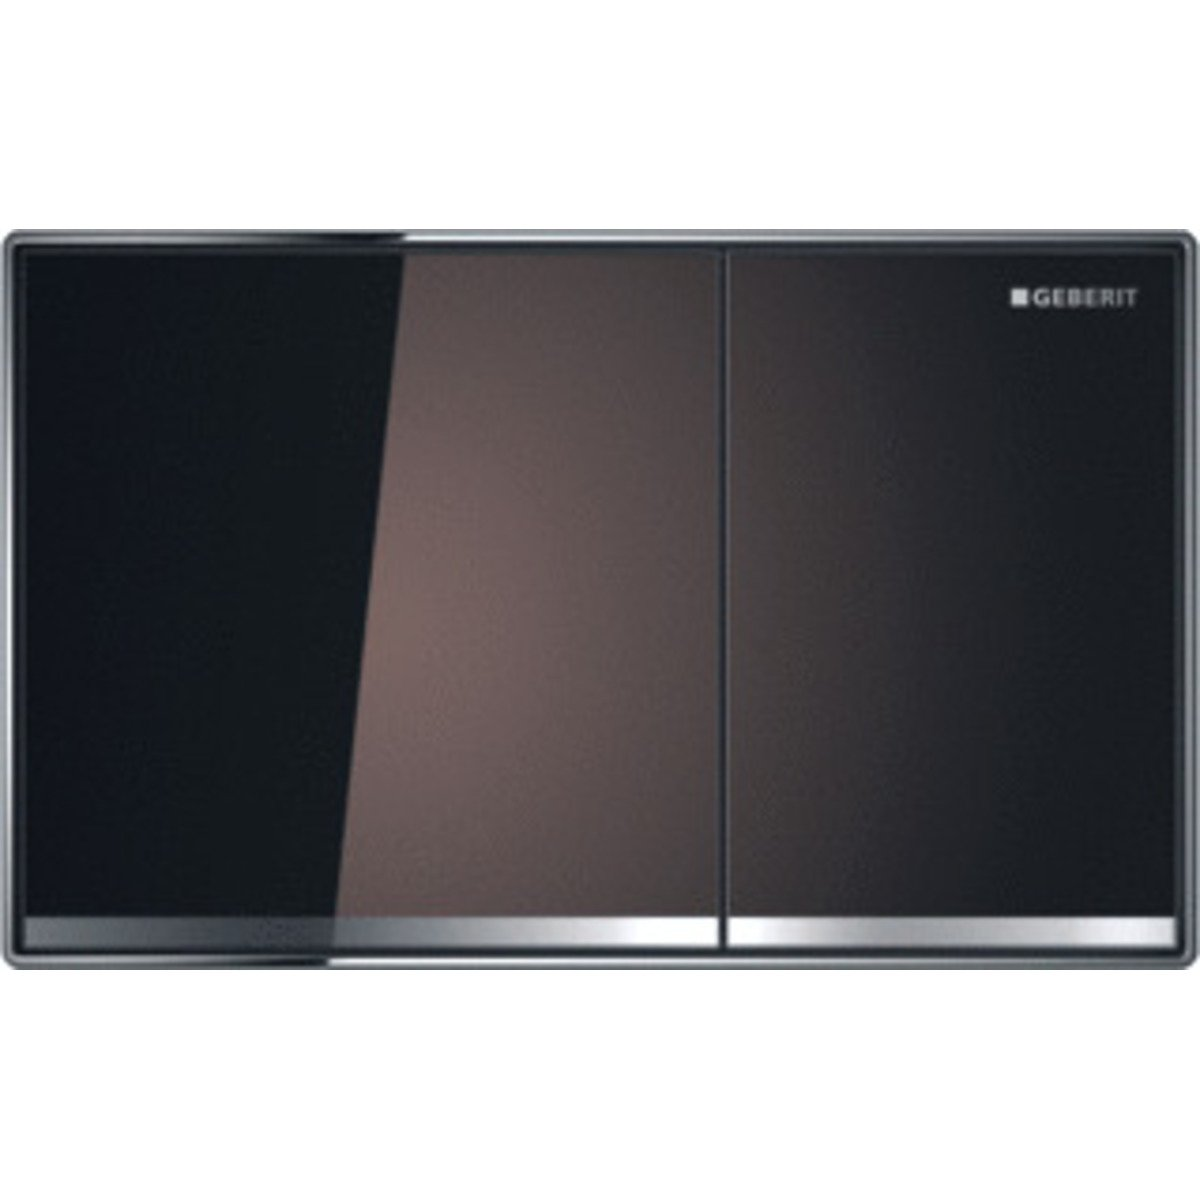 Geberit sigma 60 bedieningsplaat umbra glas 115640sq1 for Geberit products